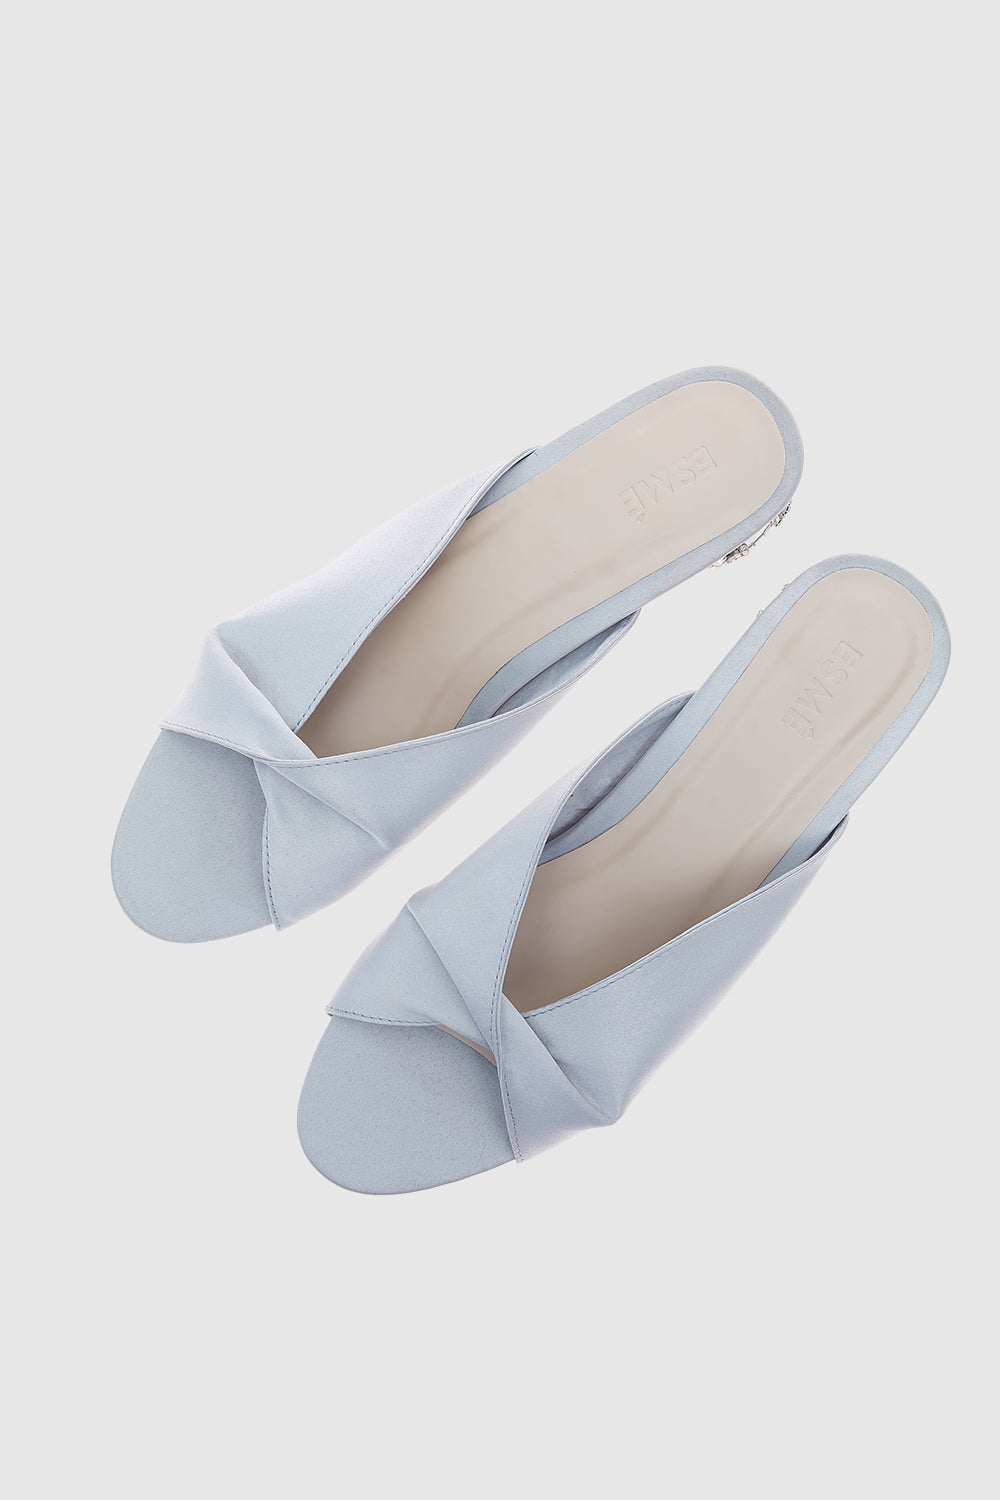 Kelly Shoes in Light Grey